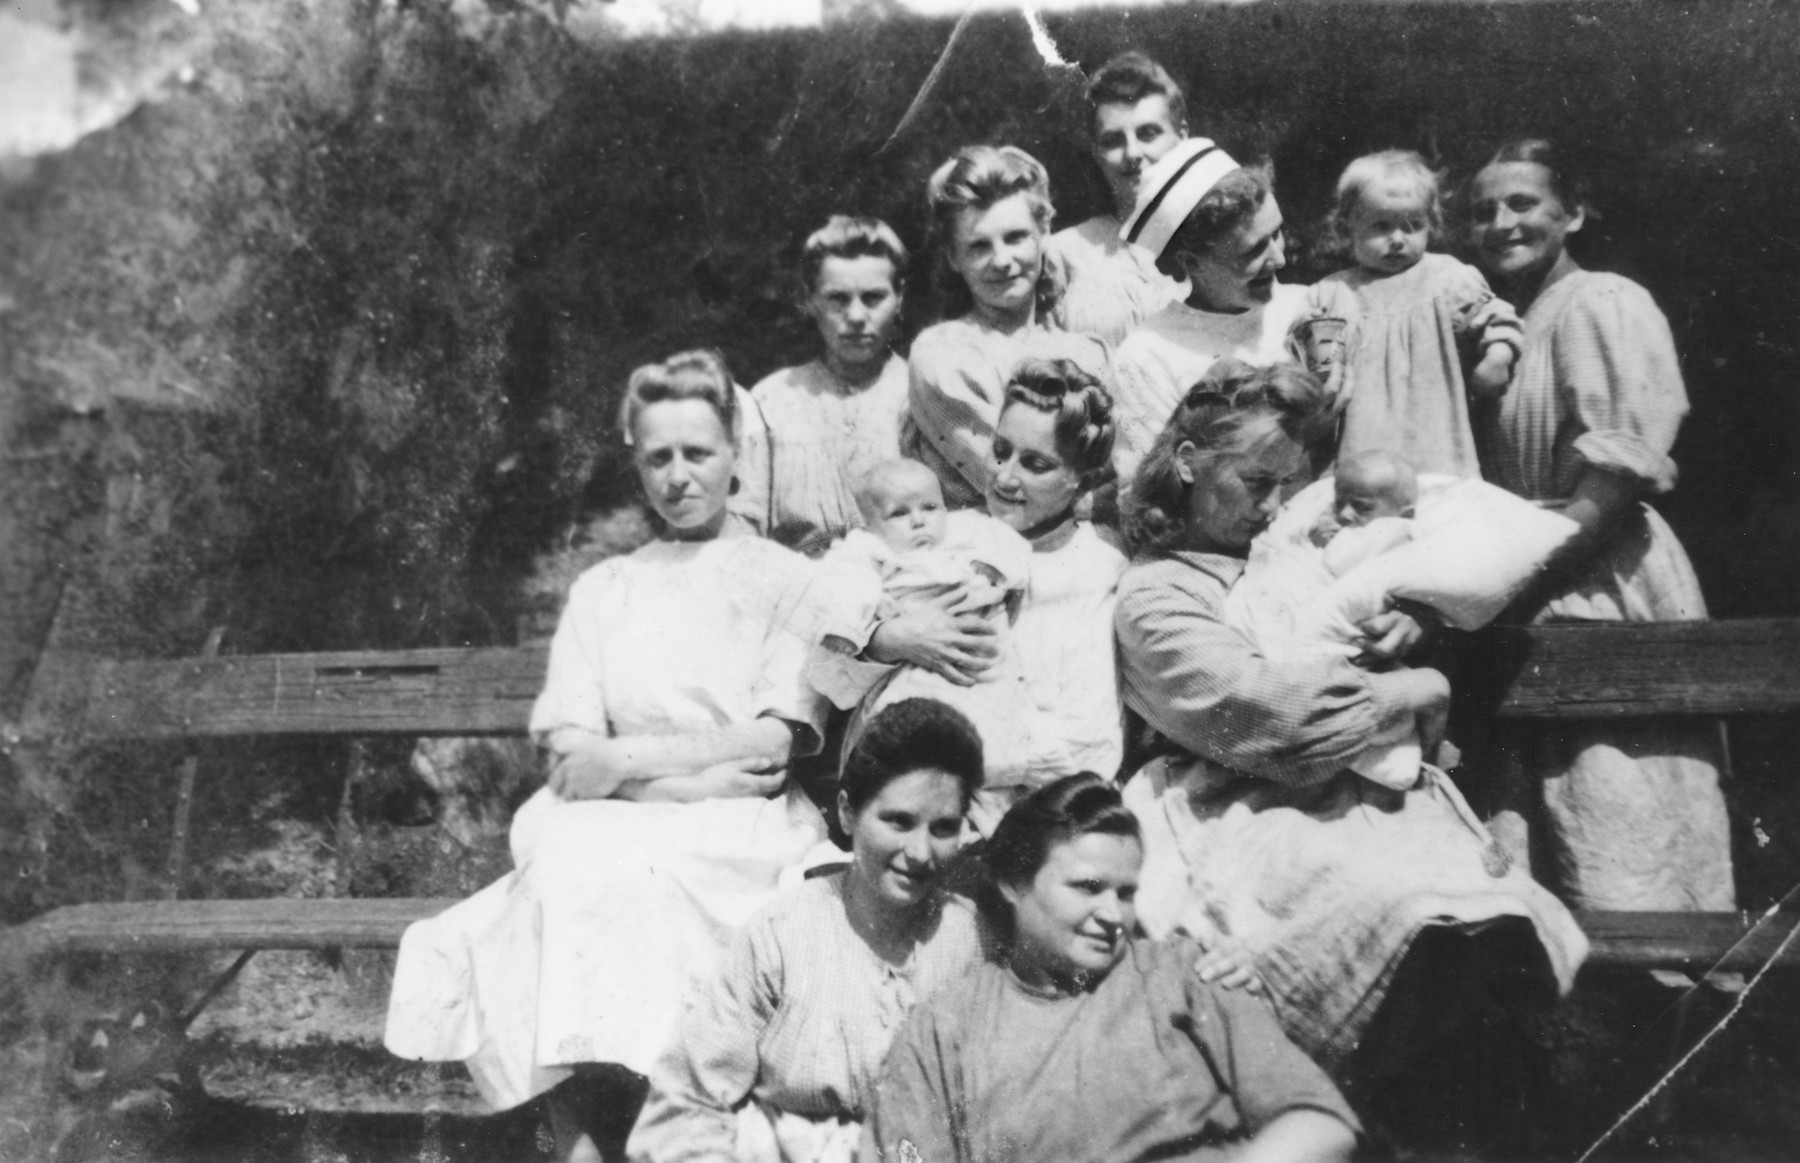 Nurses at an orphanage pose with some of the babies including a Jewish child in hiding.  Among the children is Wanda Szymeczko.